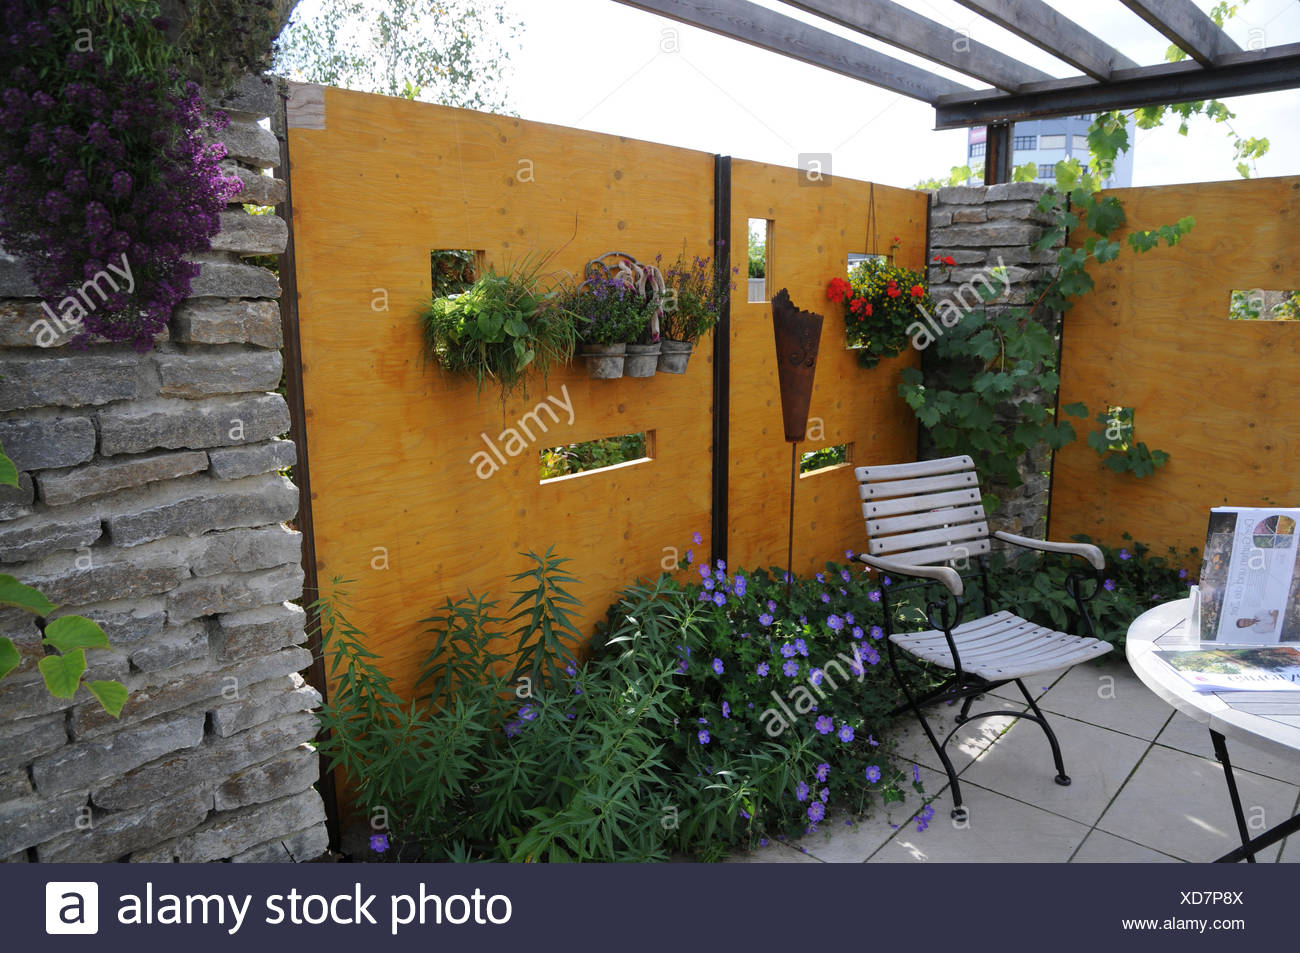 Garden with privacy shields - Stock Image